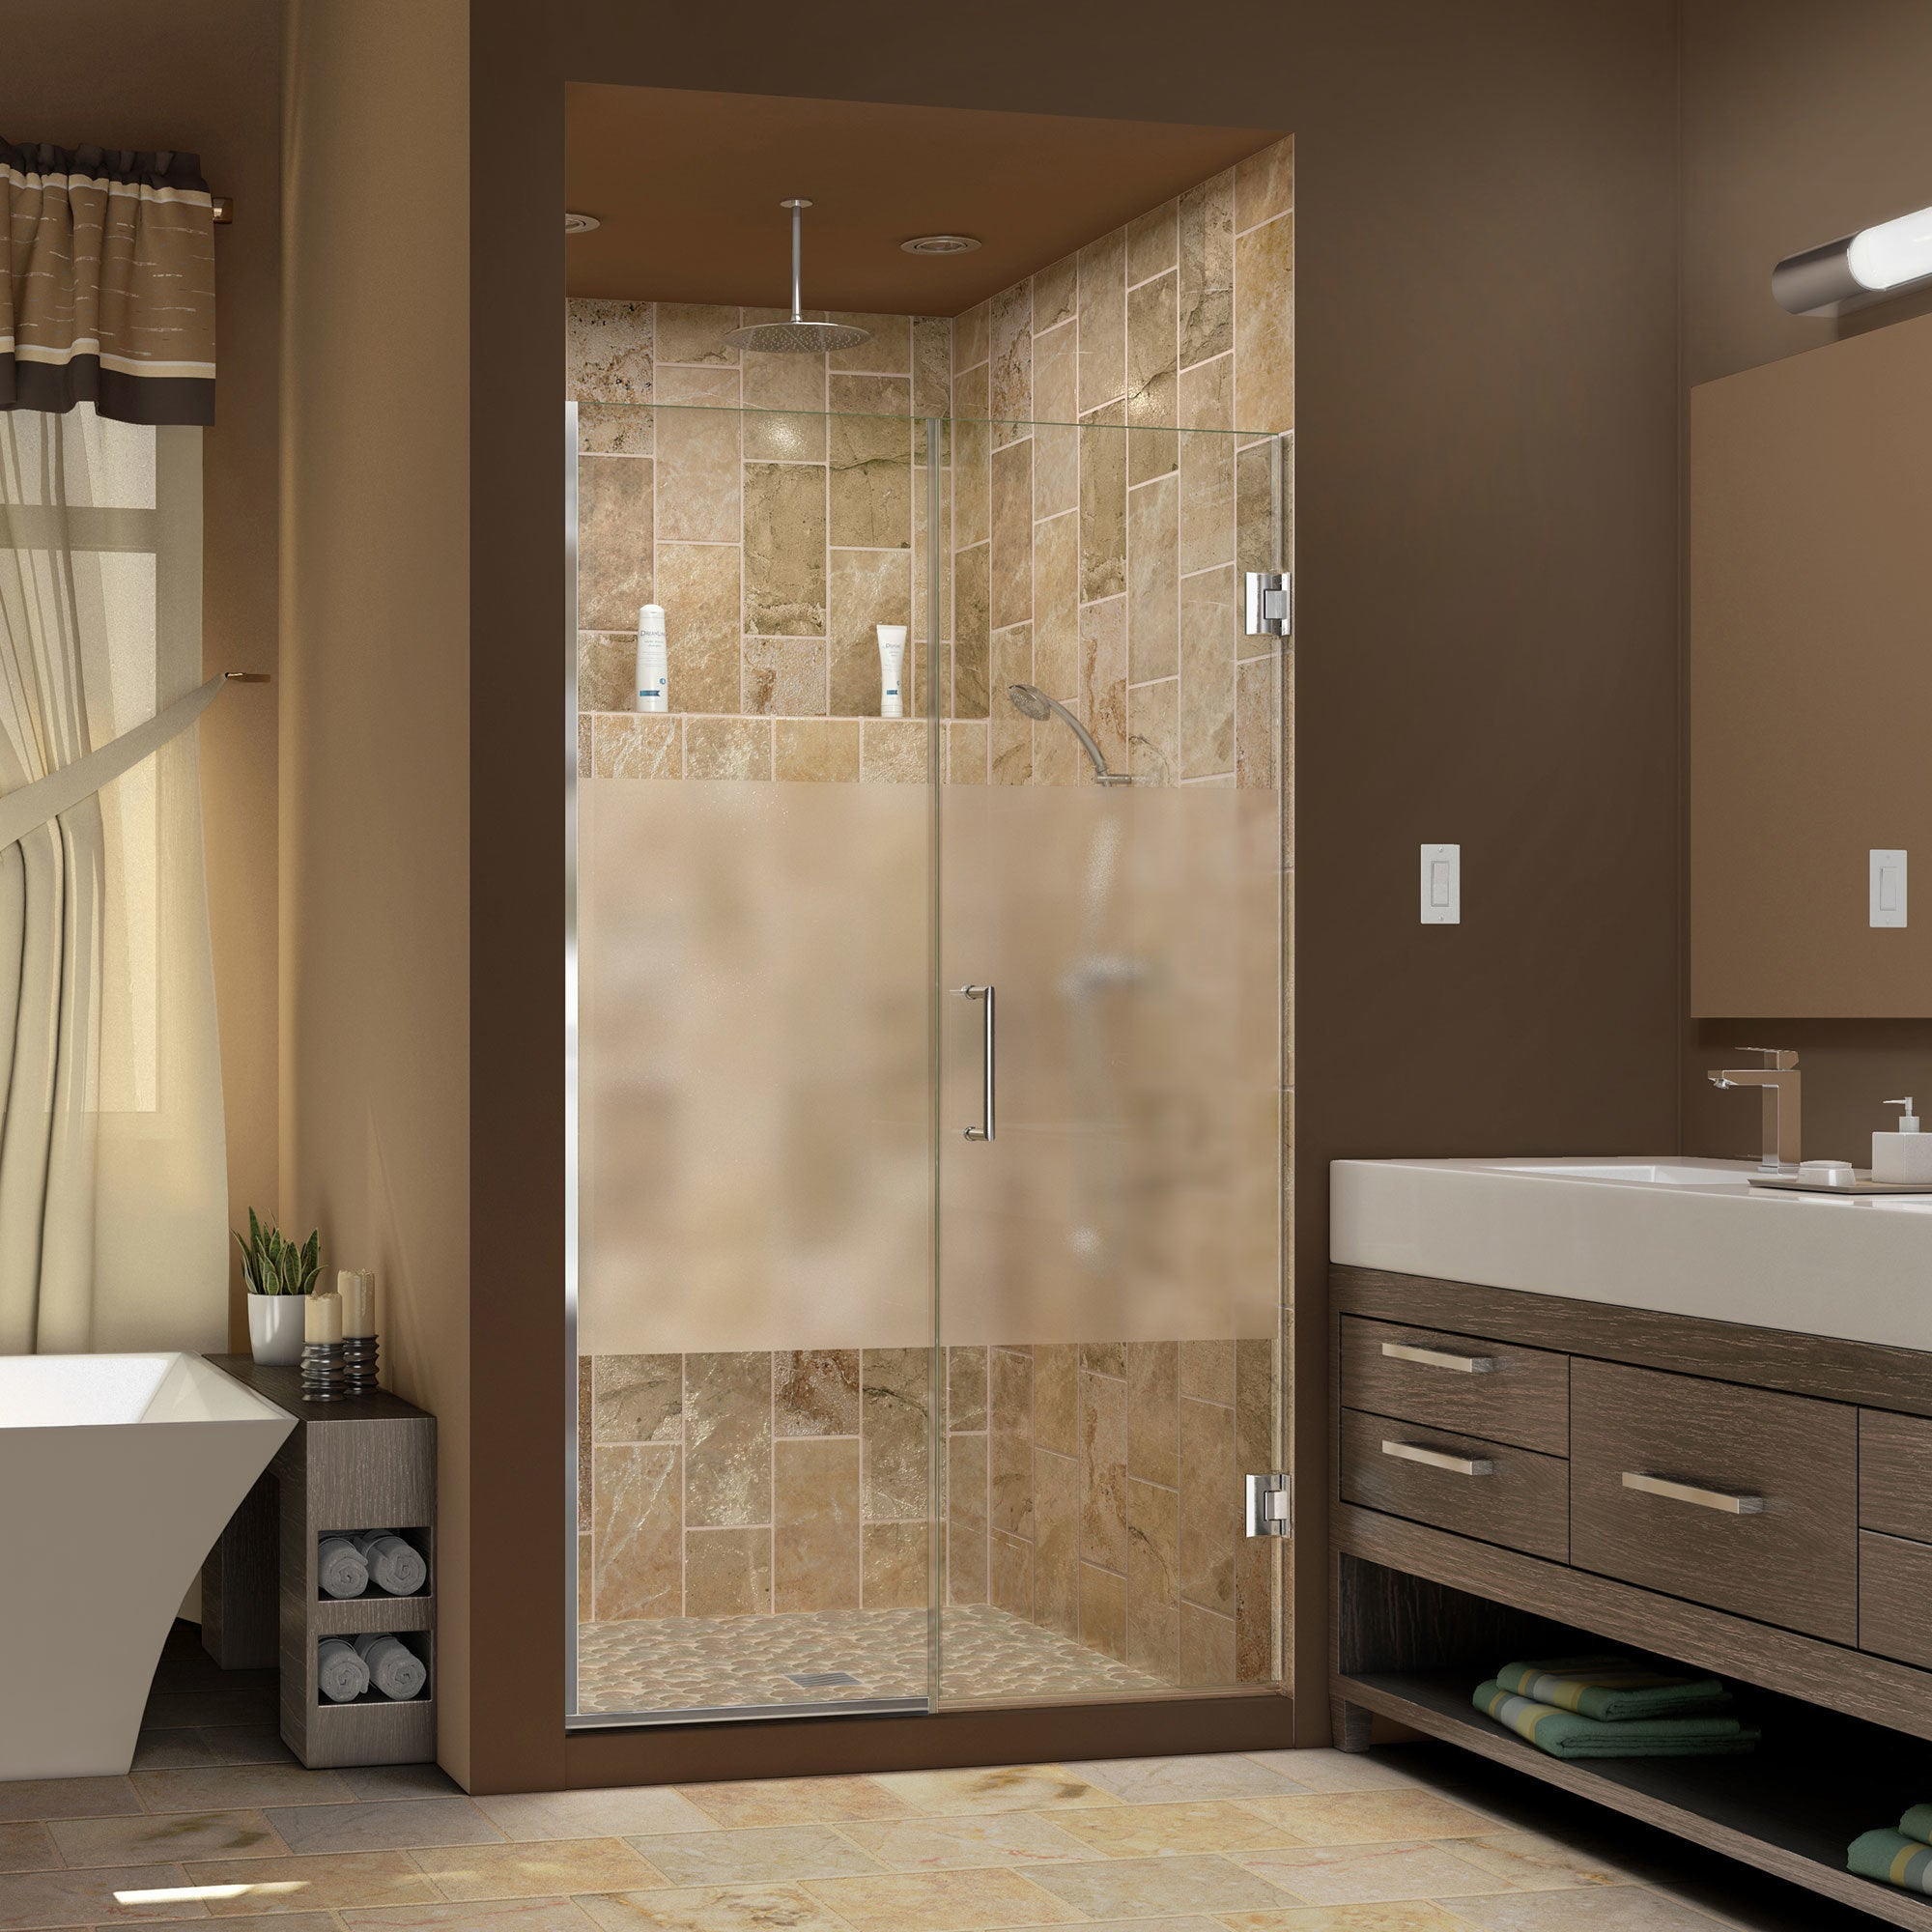 Dreamline Unidoor Plus 50 51 In W X 72 In H Hinged Shower Door Half Frosted Glass Door